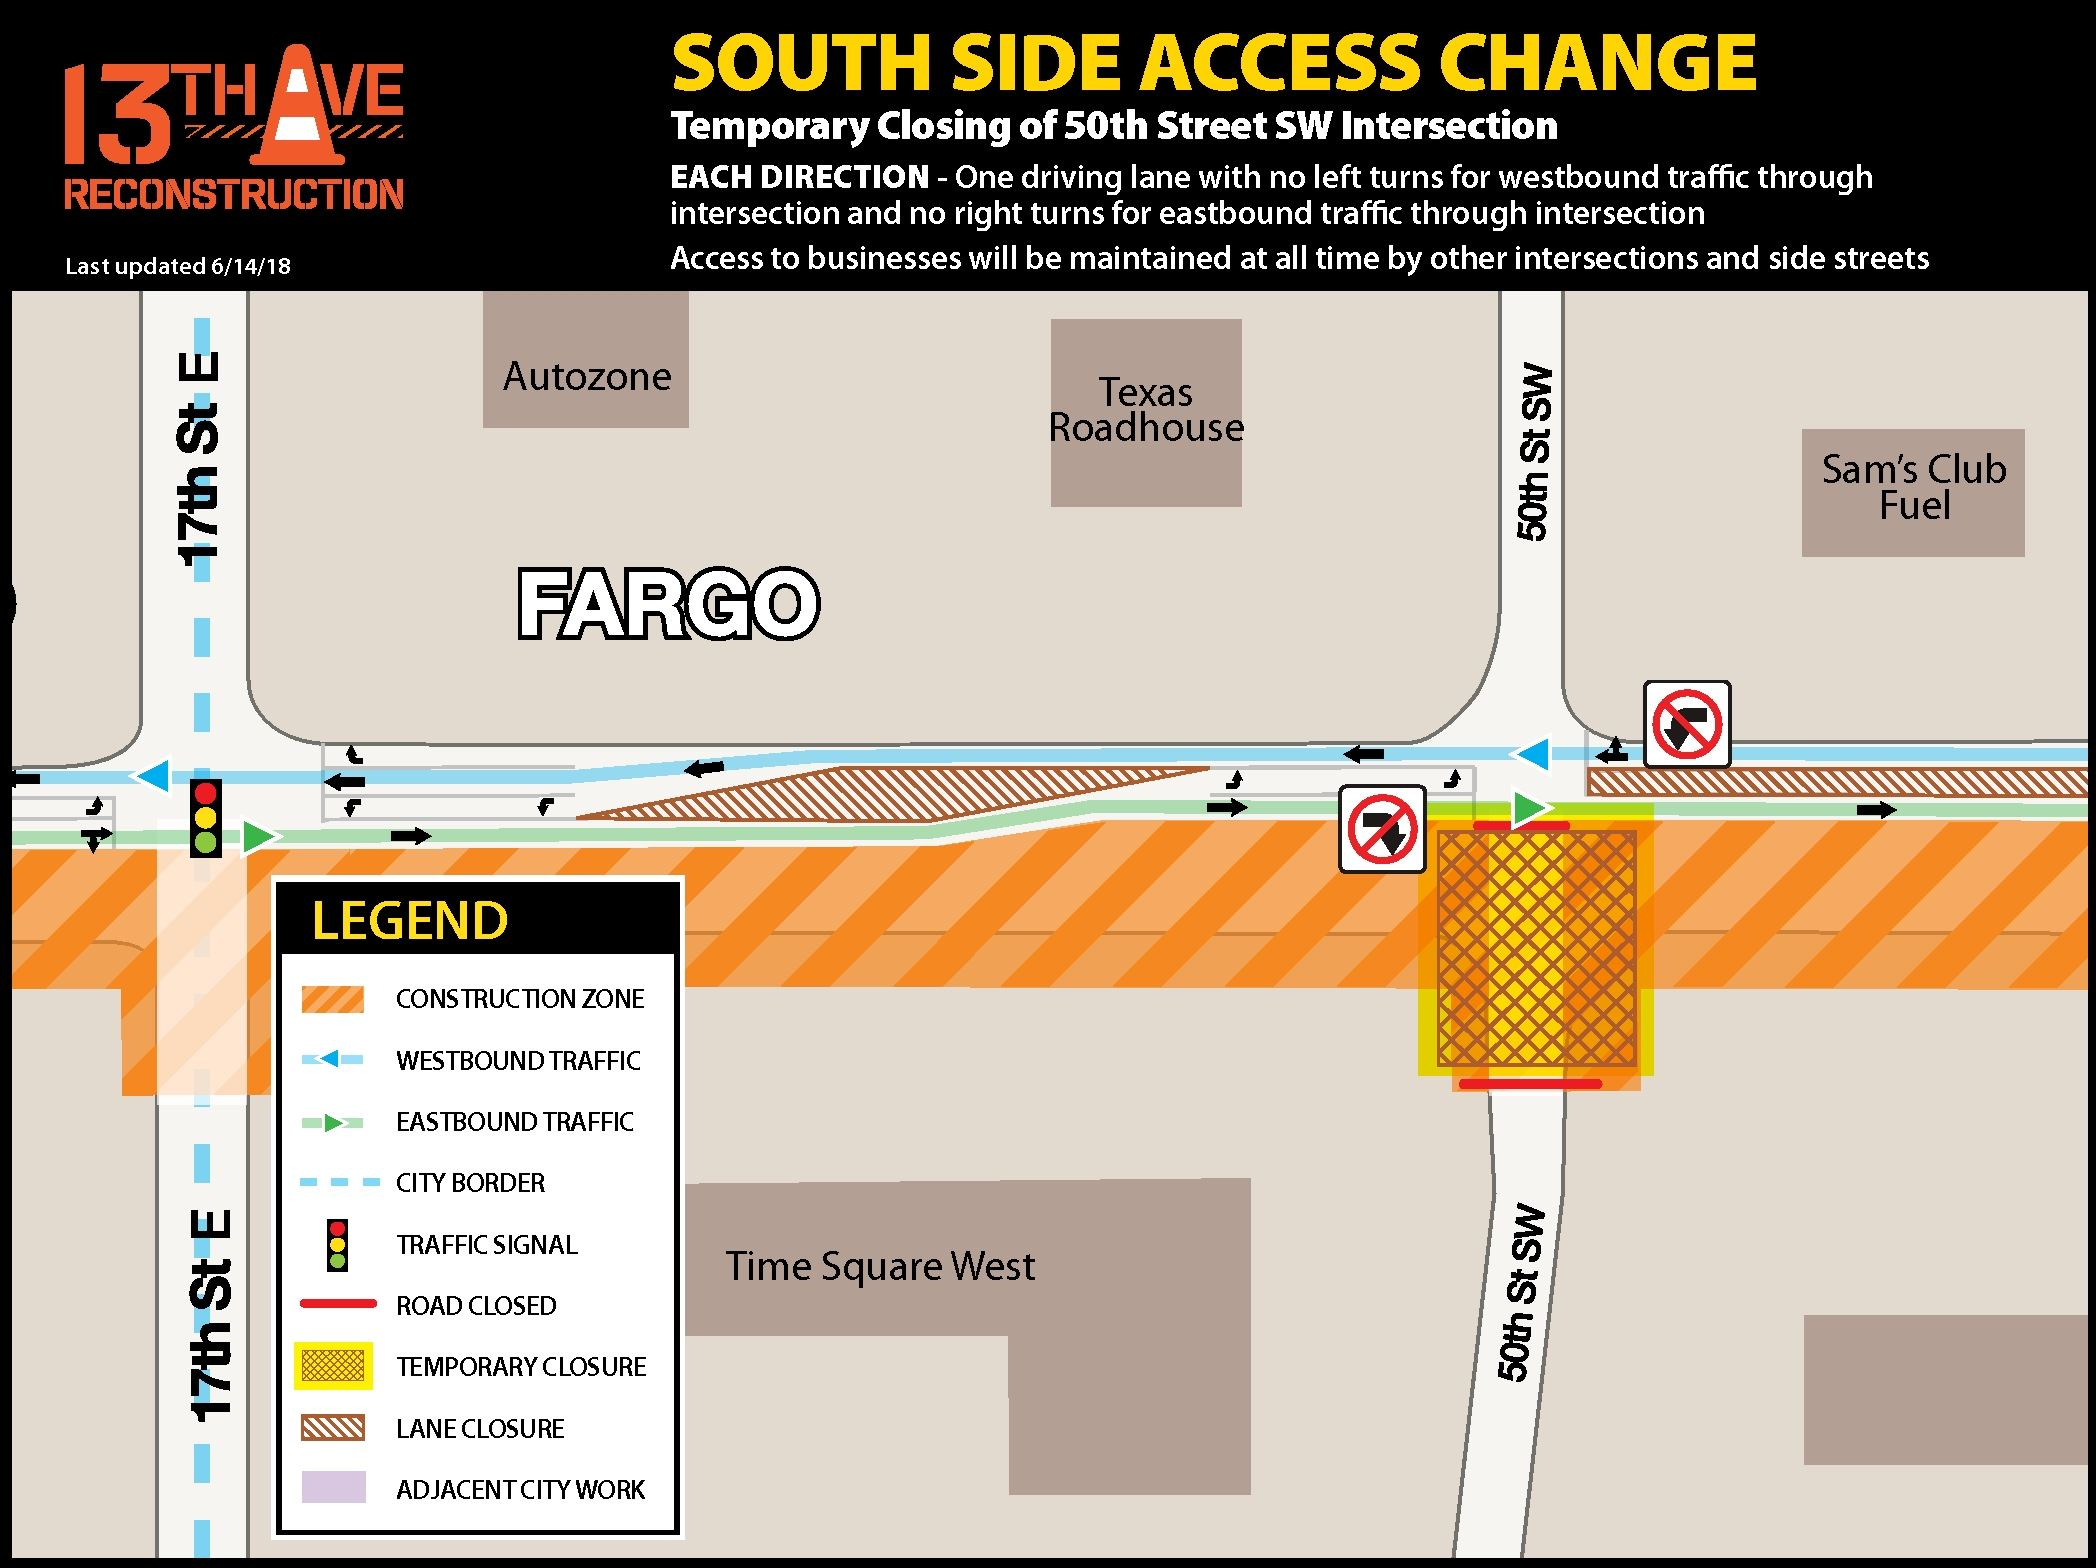 Temporary closing of 50th Street SW intersection